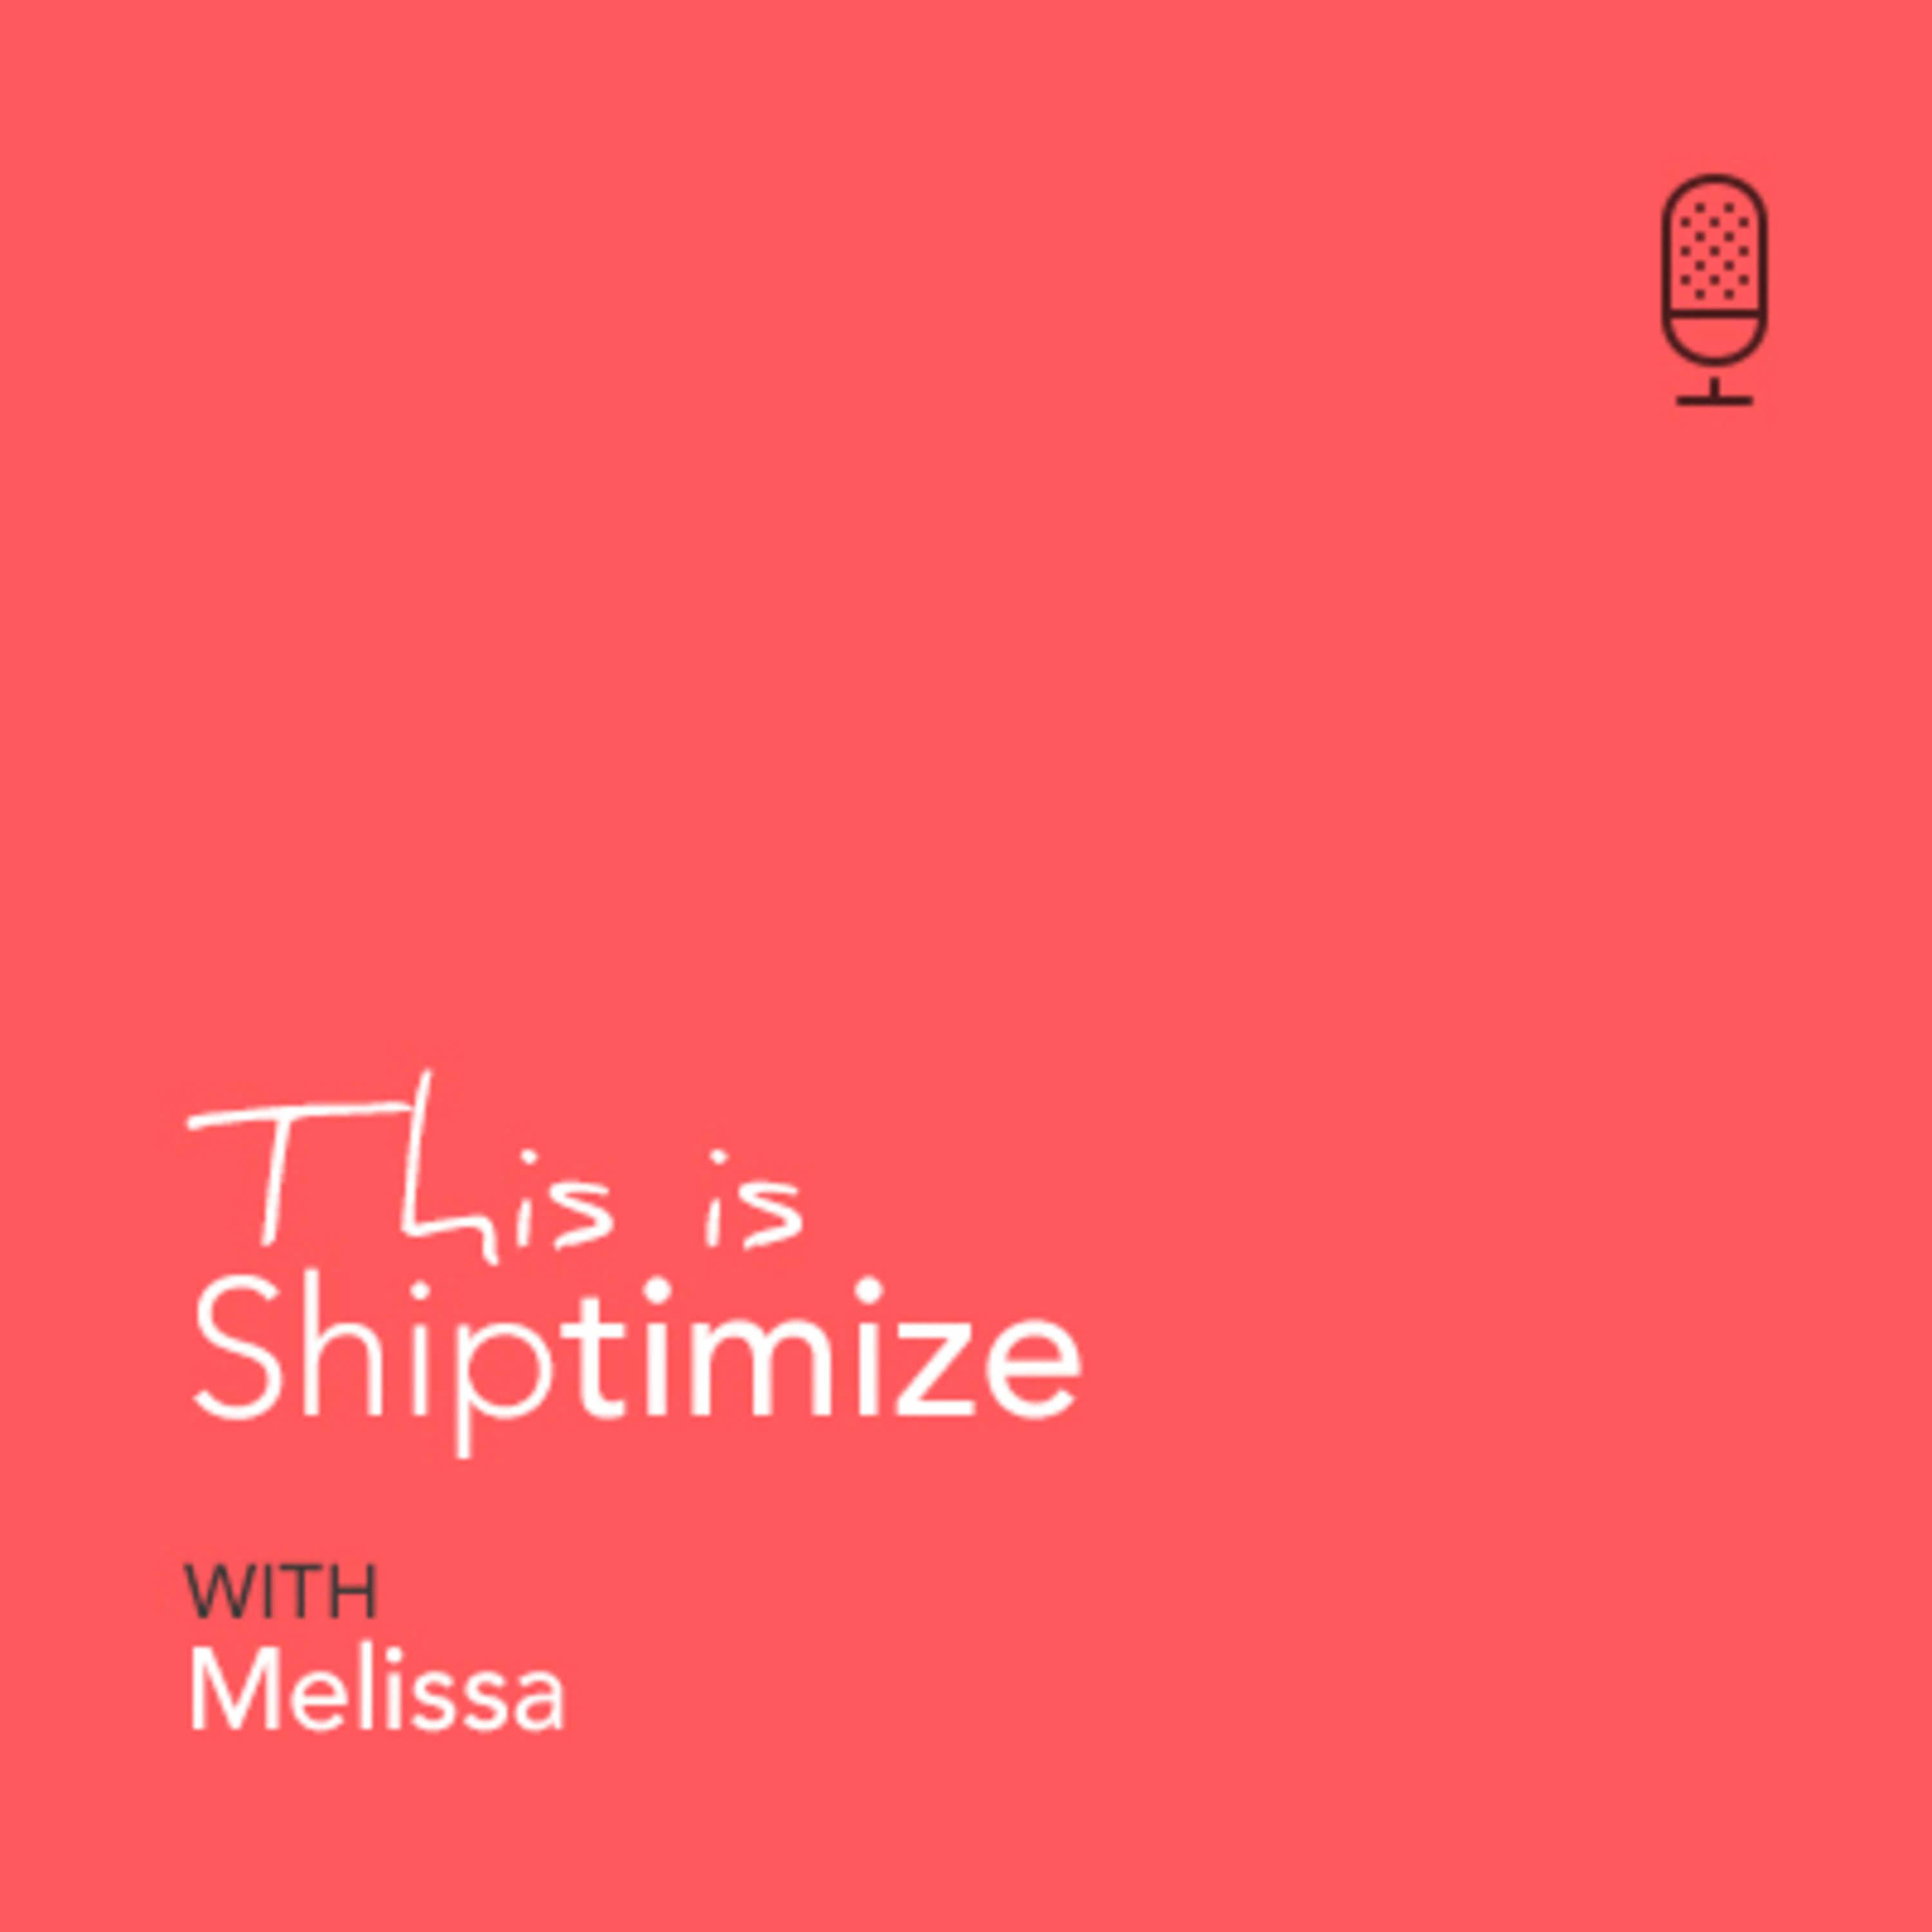 This is Shiptimize - Meet Melissa!